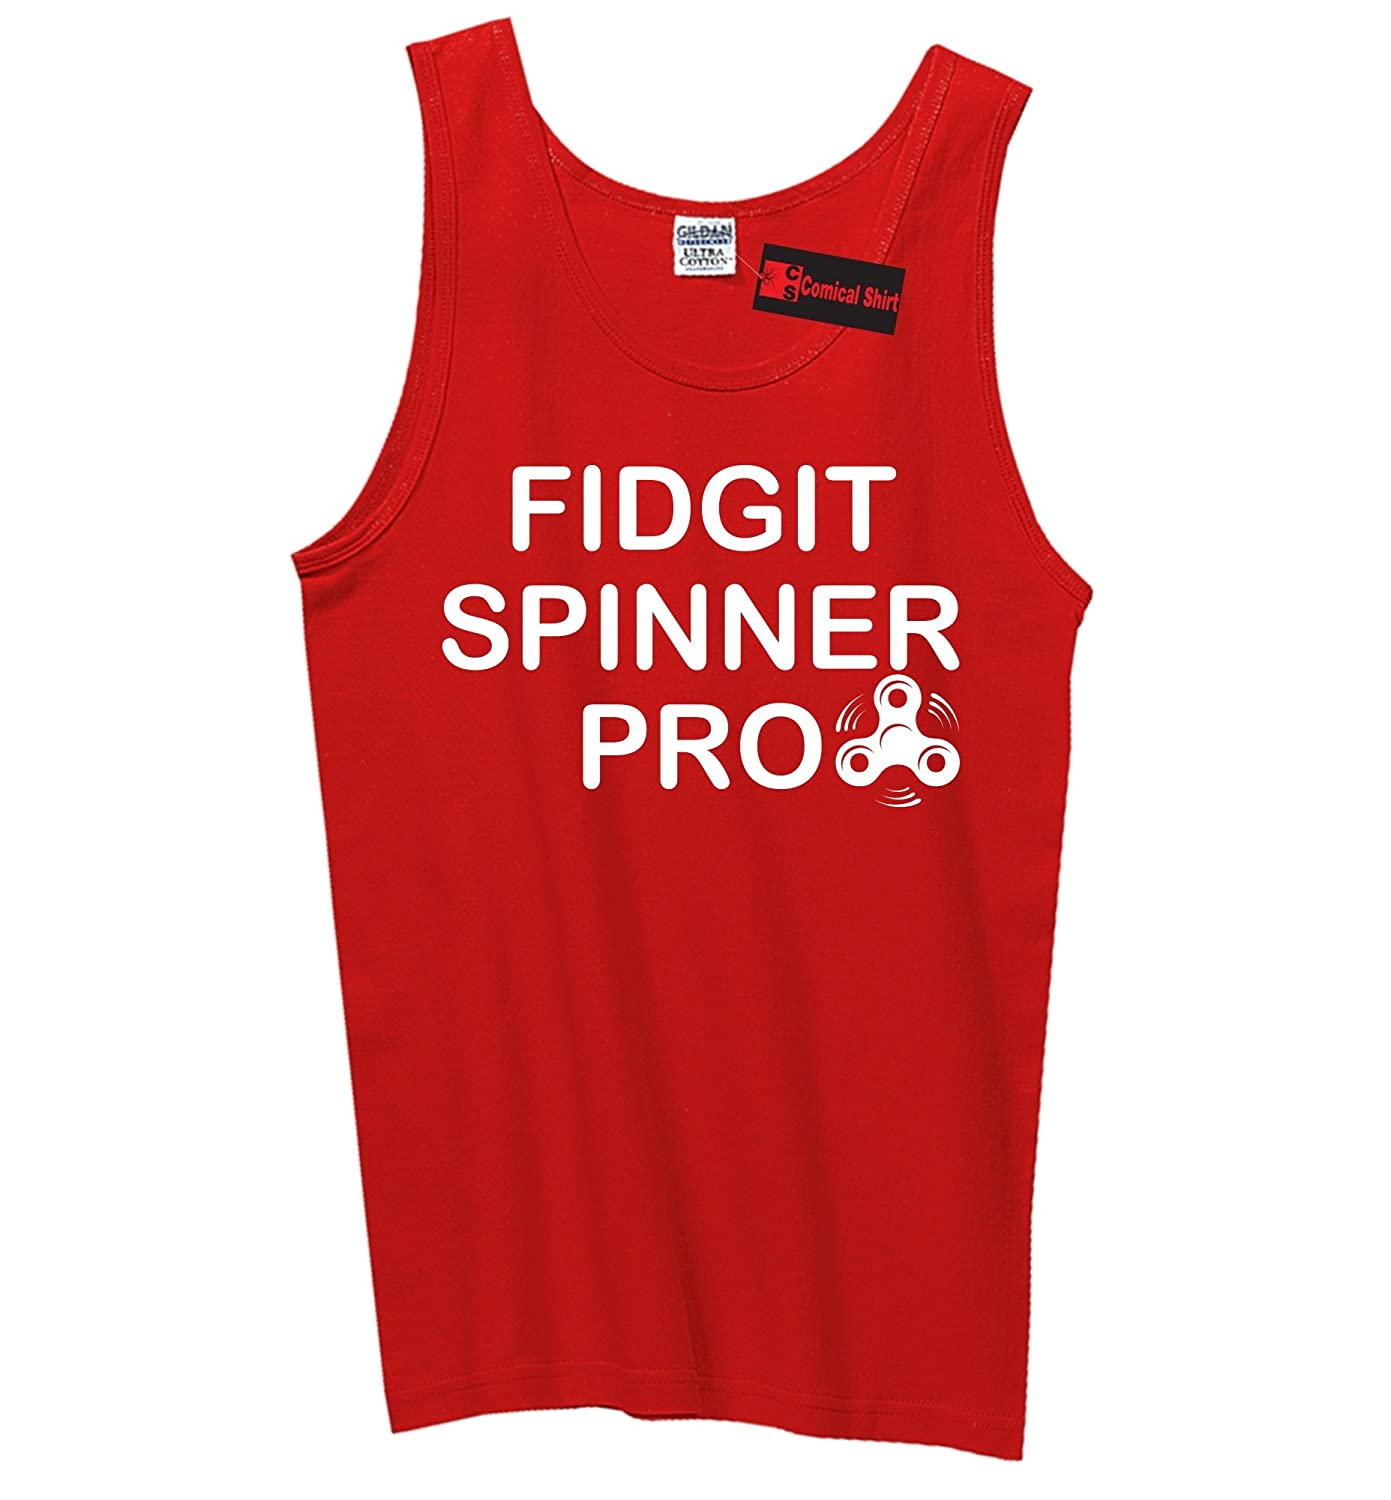 Comical Shirt Mens Fidgit Spinner Pro Tank Top